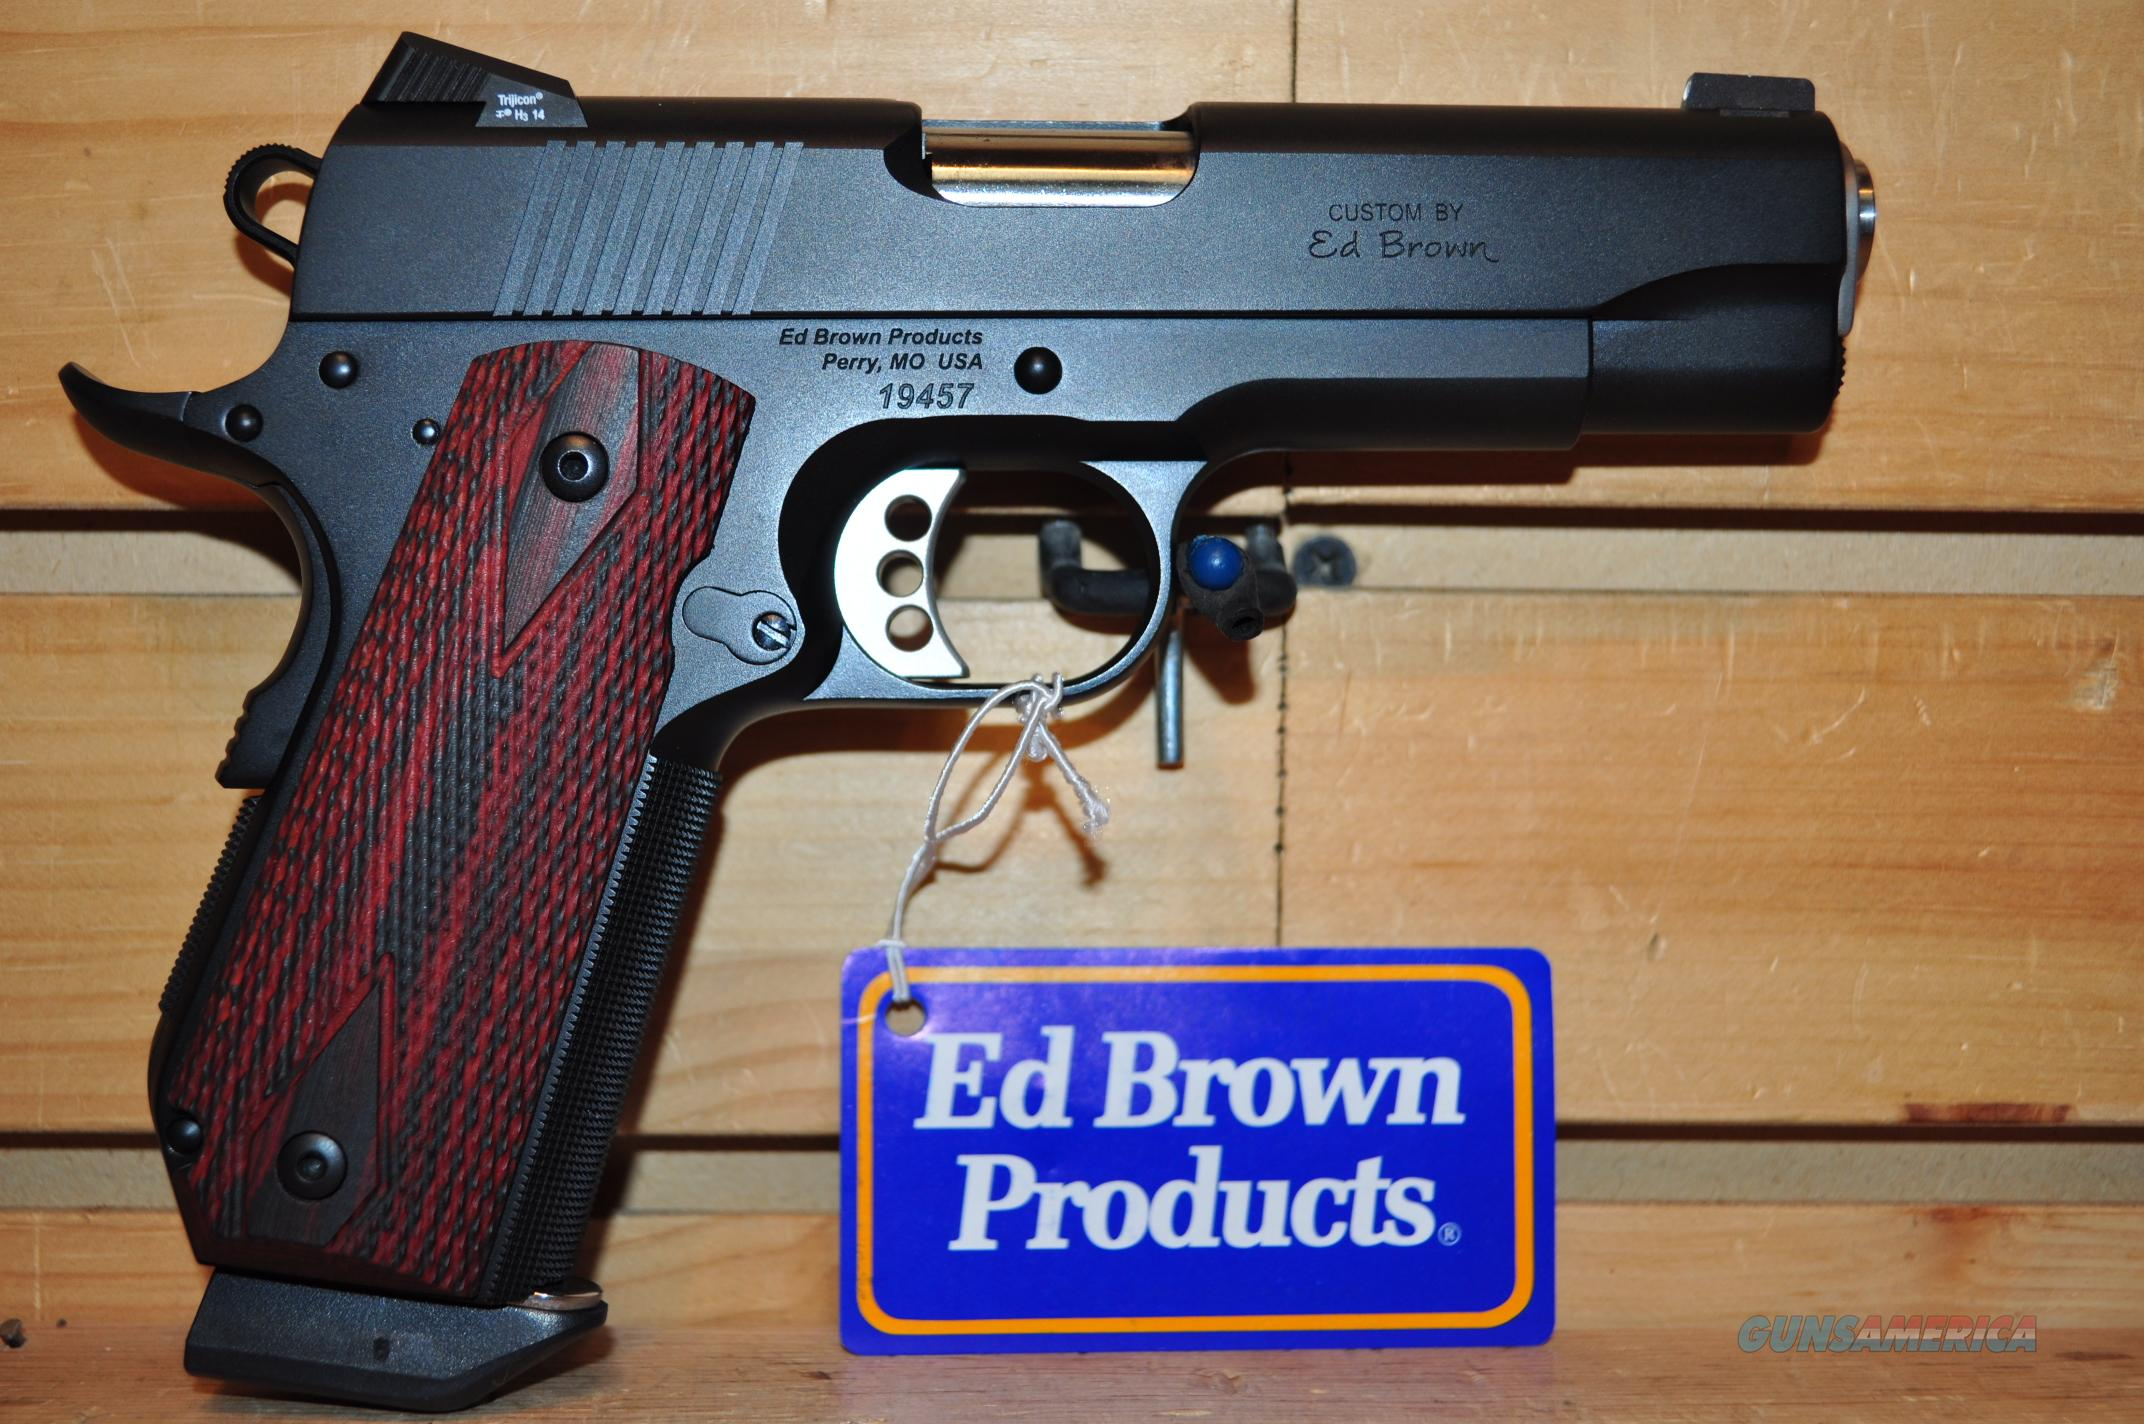 Ed Brown 25 LPI Limited Edition 38 Super FREE SHIPPING  Guns > Pistols > Ed Brown Pistols